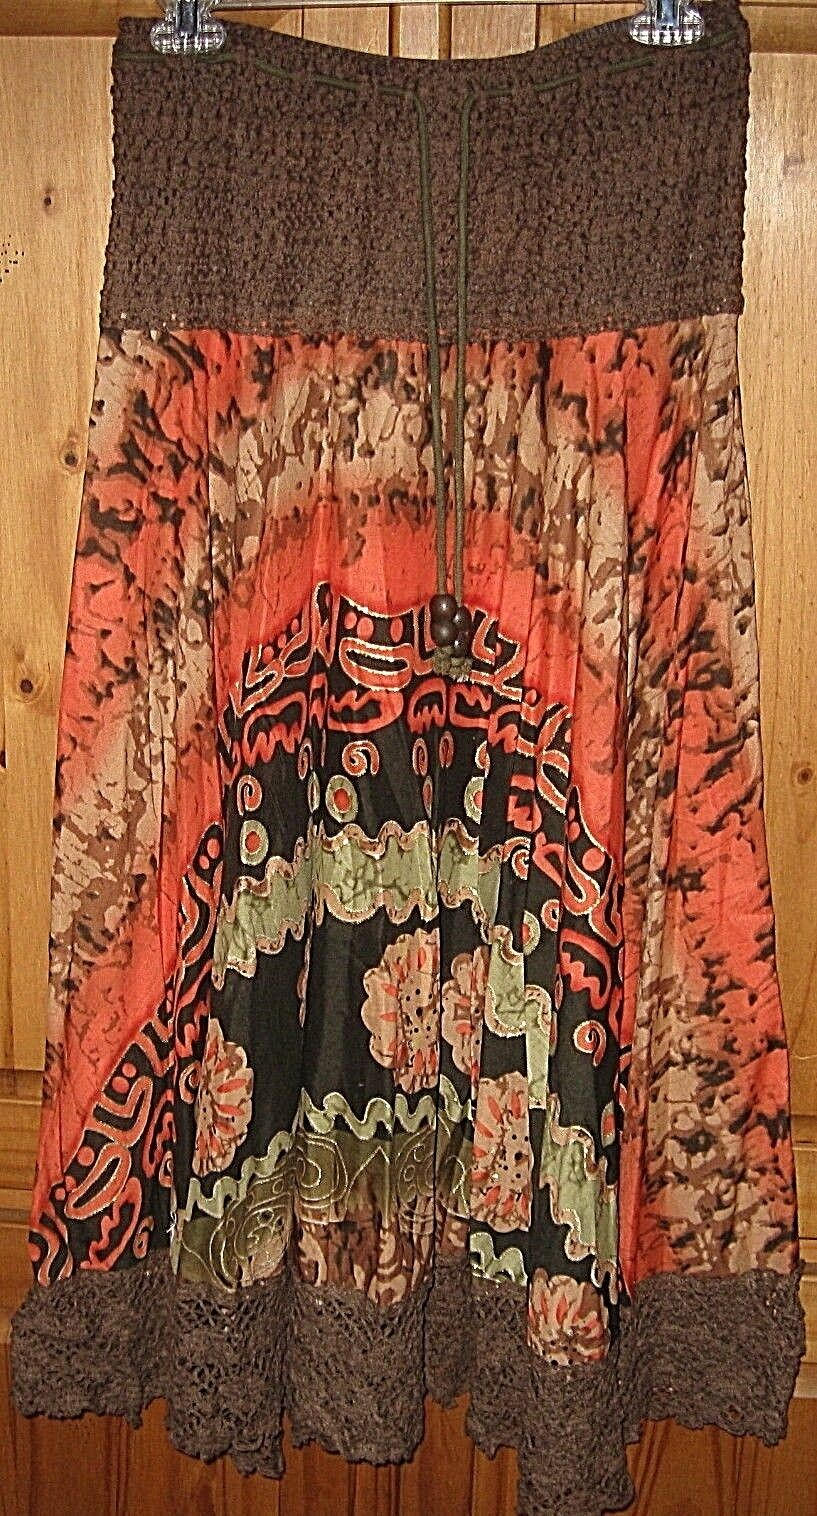 KAKTUS Women's skirt Peastant Full Crochet Brown orange gold Print Small New